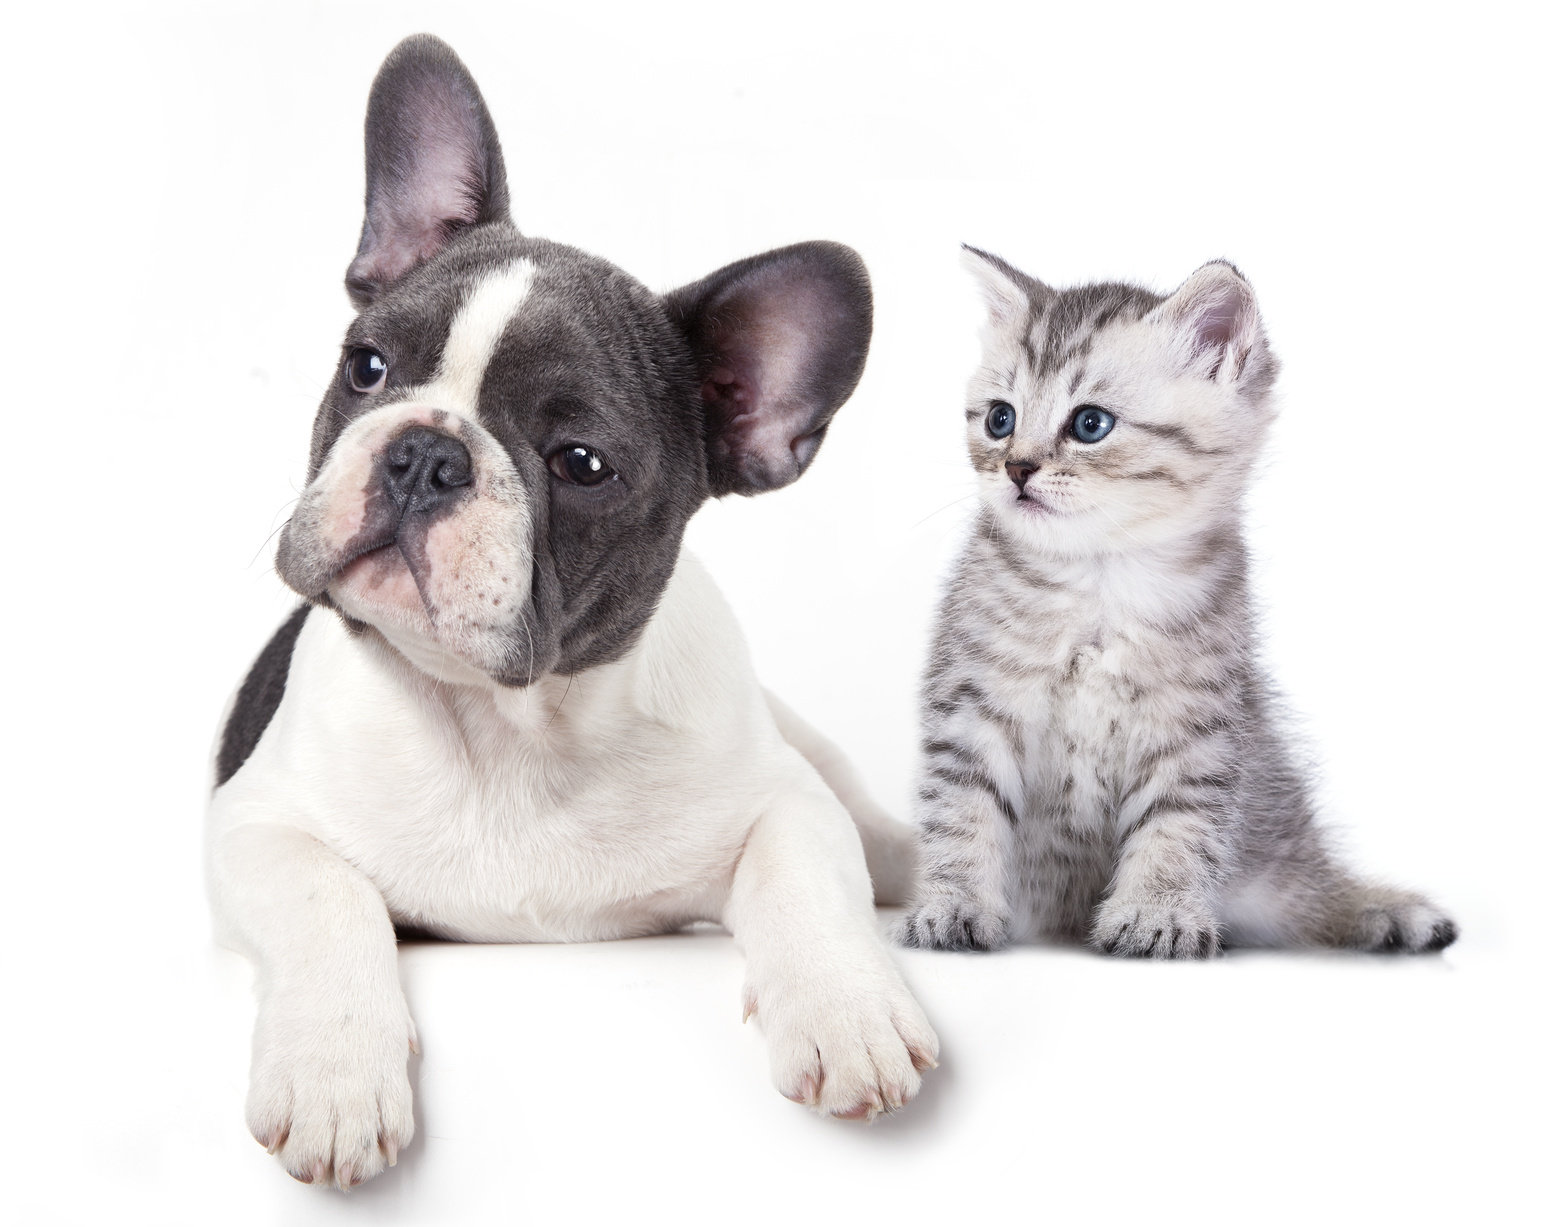 frenchie and kitten